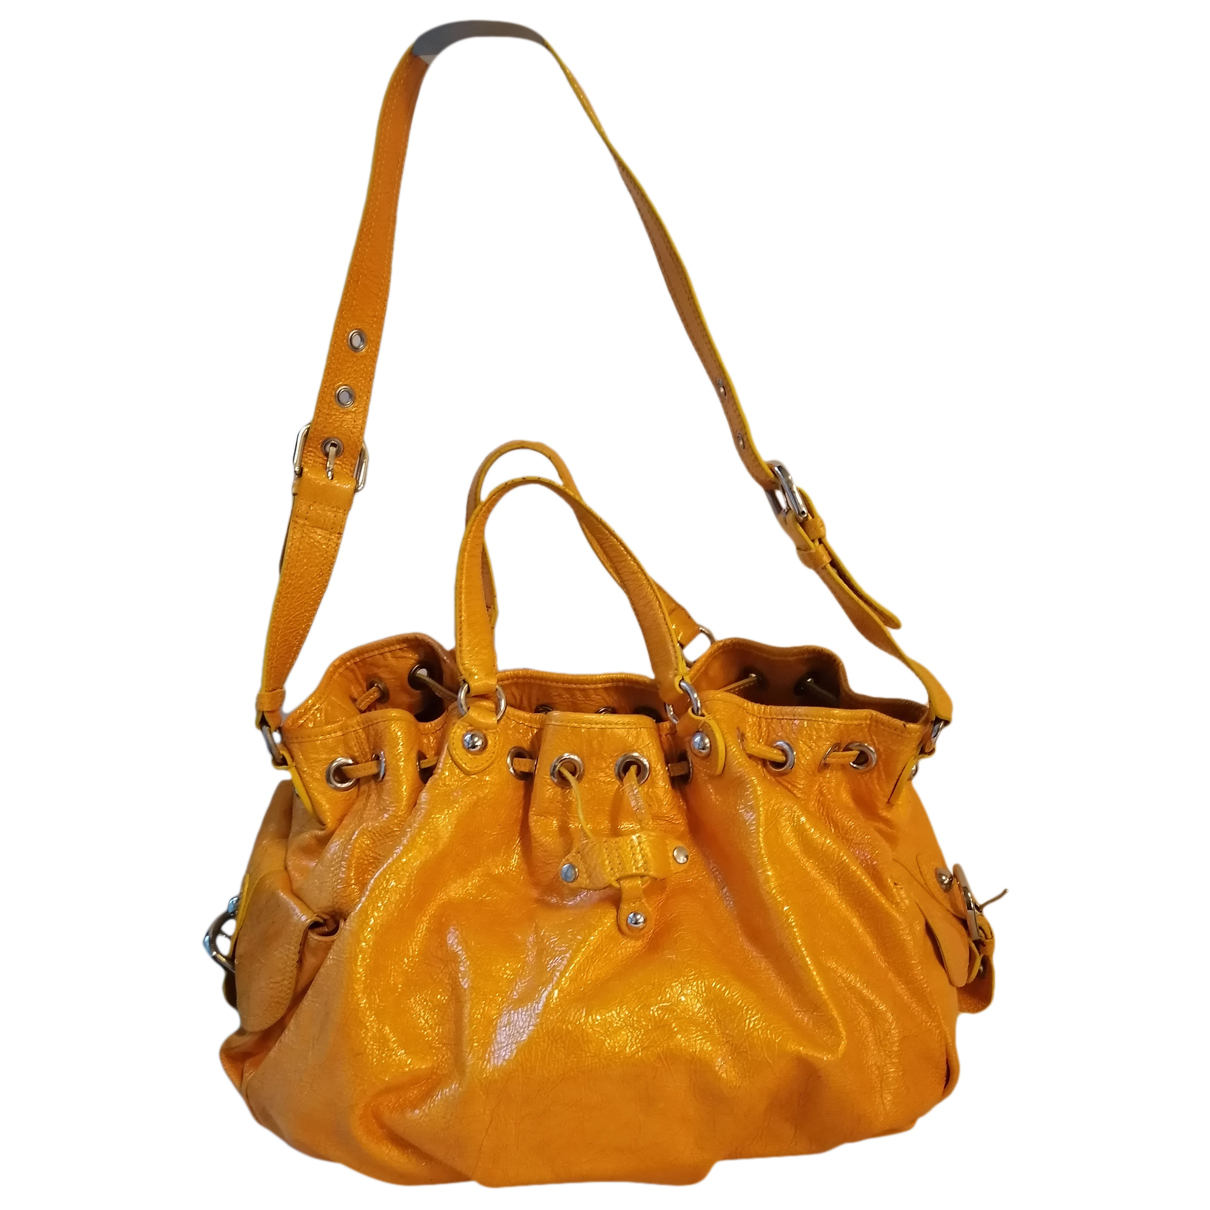 Moschino Cheap And Chic - Sac a main   pour femme en cuir verni - jaune